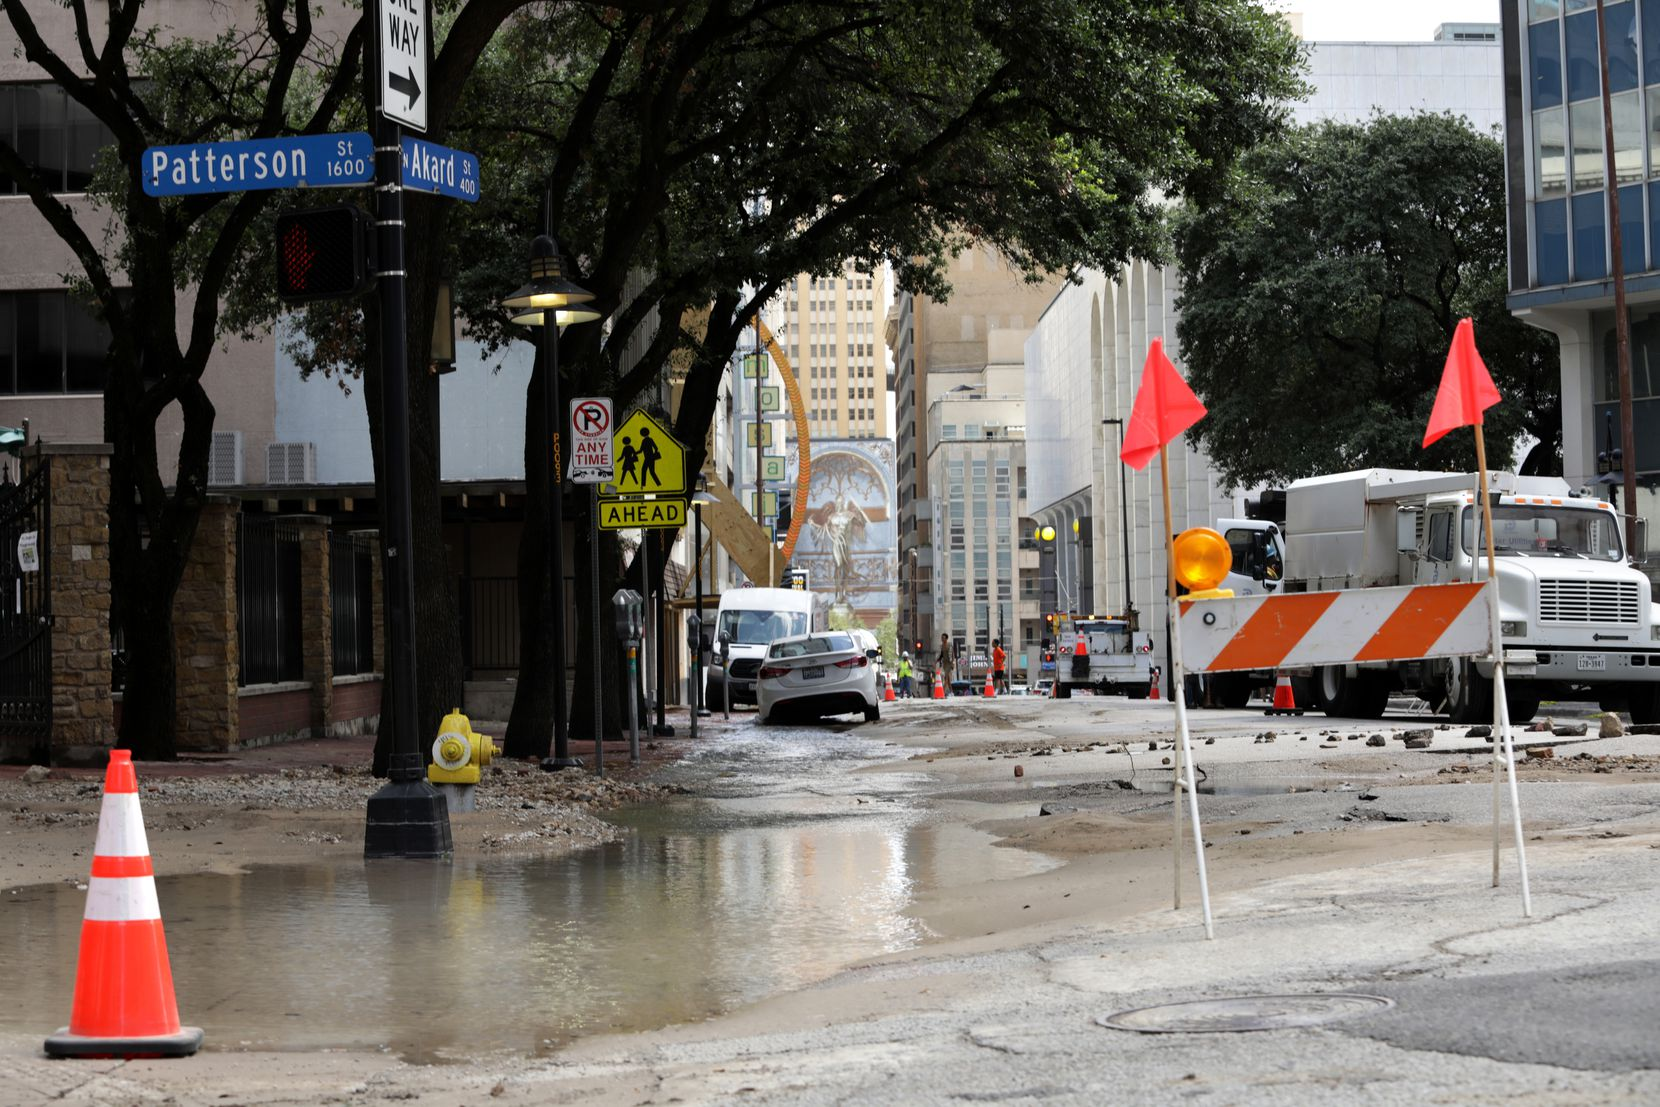 Water was still seeping from the ground hours after the initial break around 1 p.m.